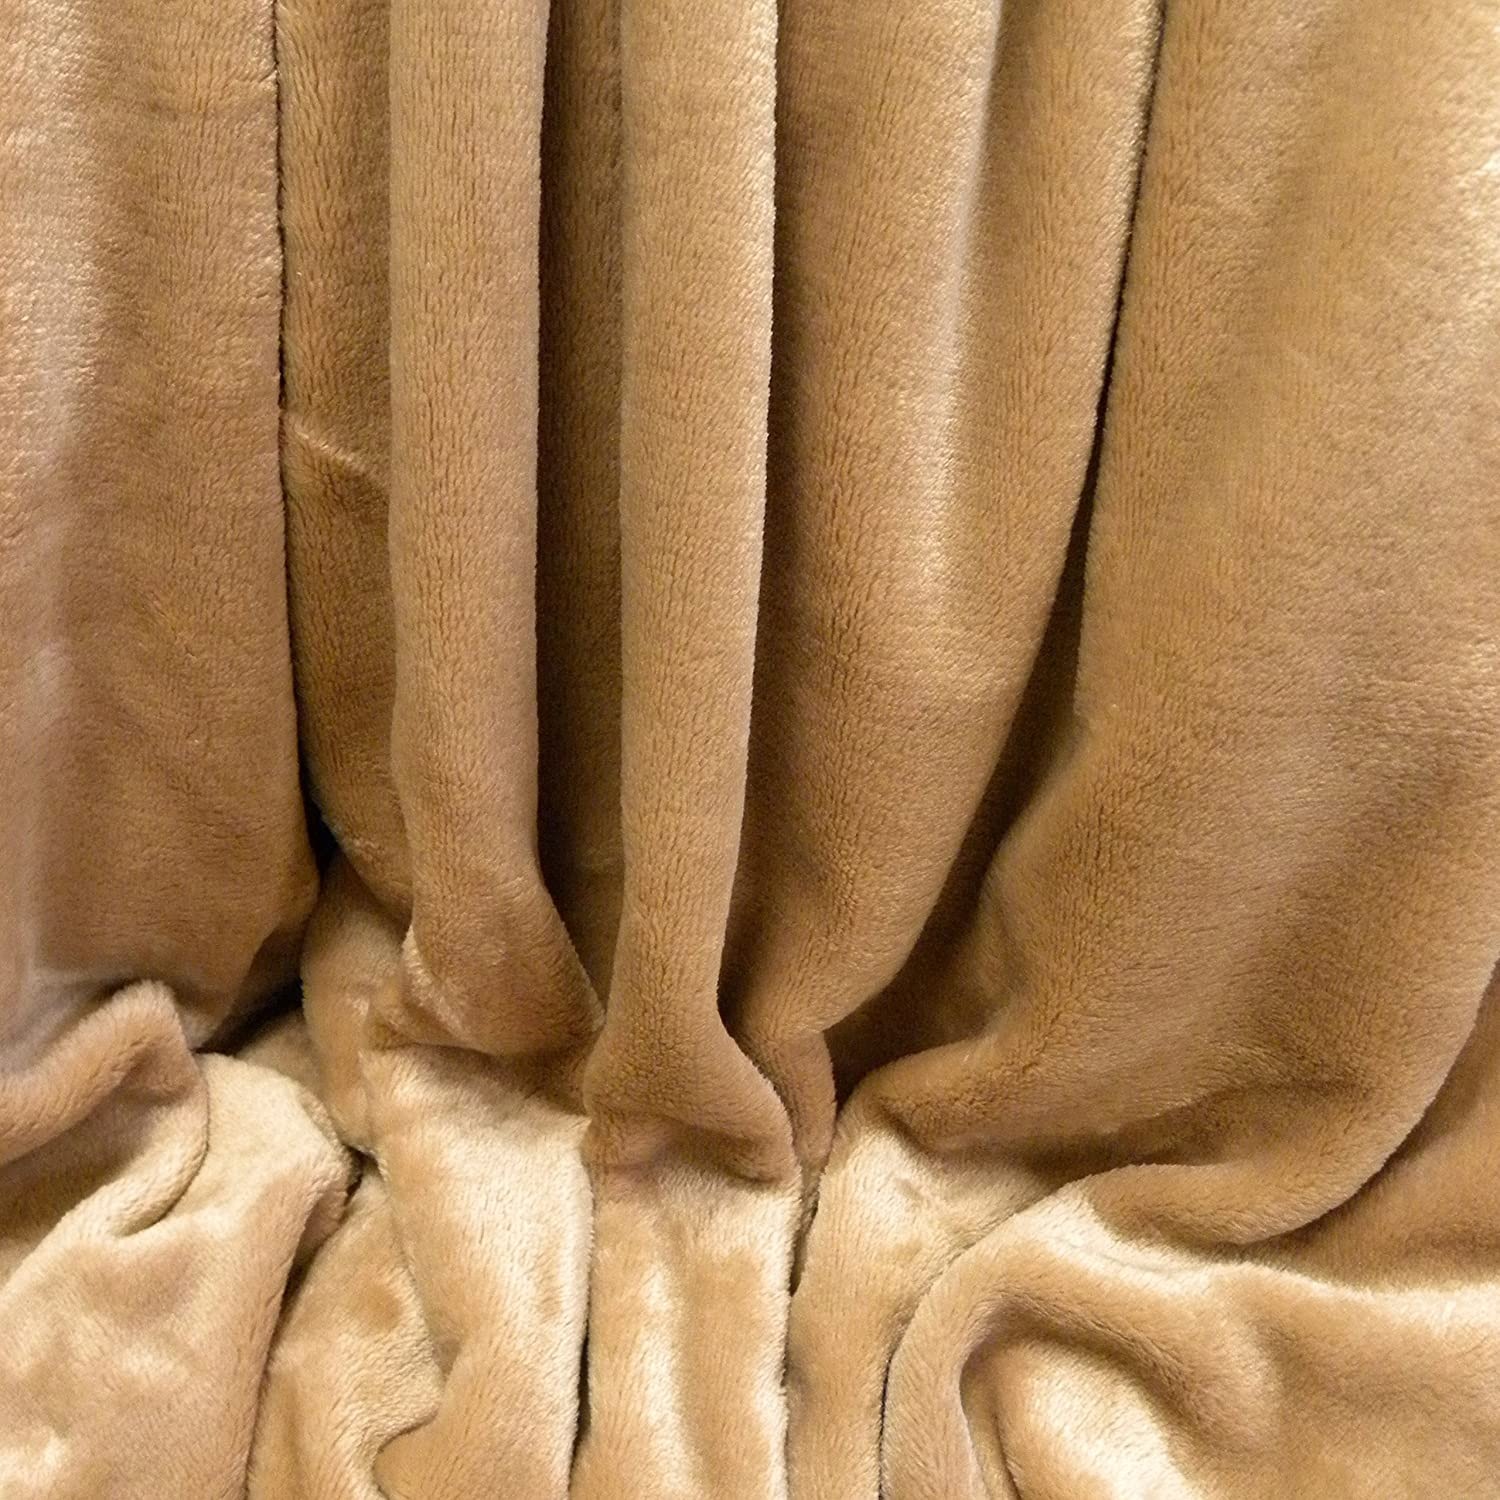 Berkshire VelvetLoft Polyester Blankets, Tan Full Queen